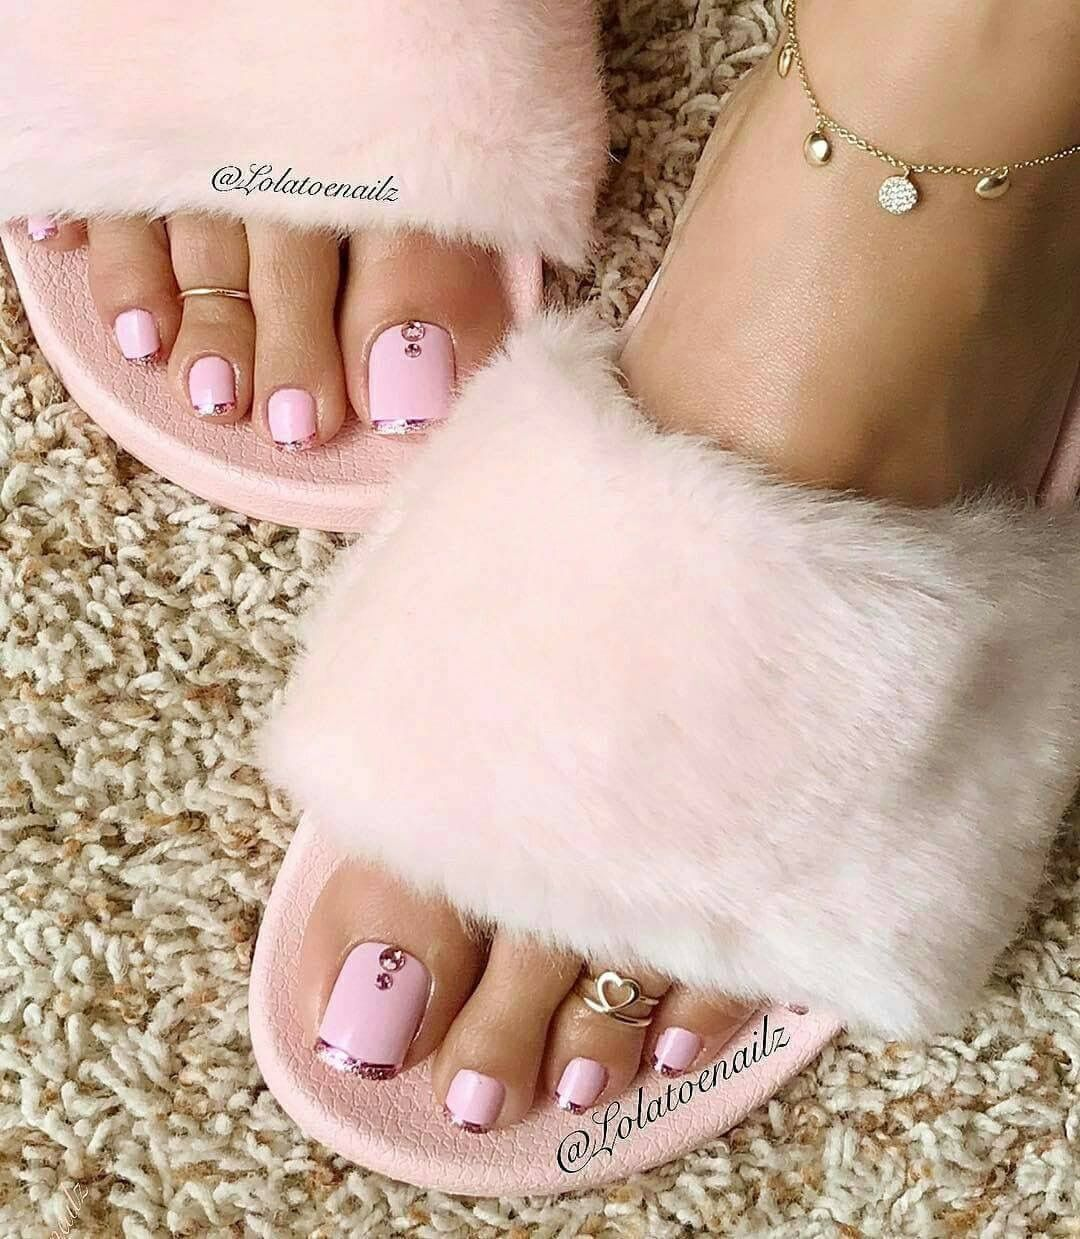 Pin by Ta-Nisha Emmanuel on nails | Pinterest | Pedicures, Manicure ...